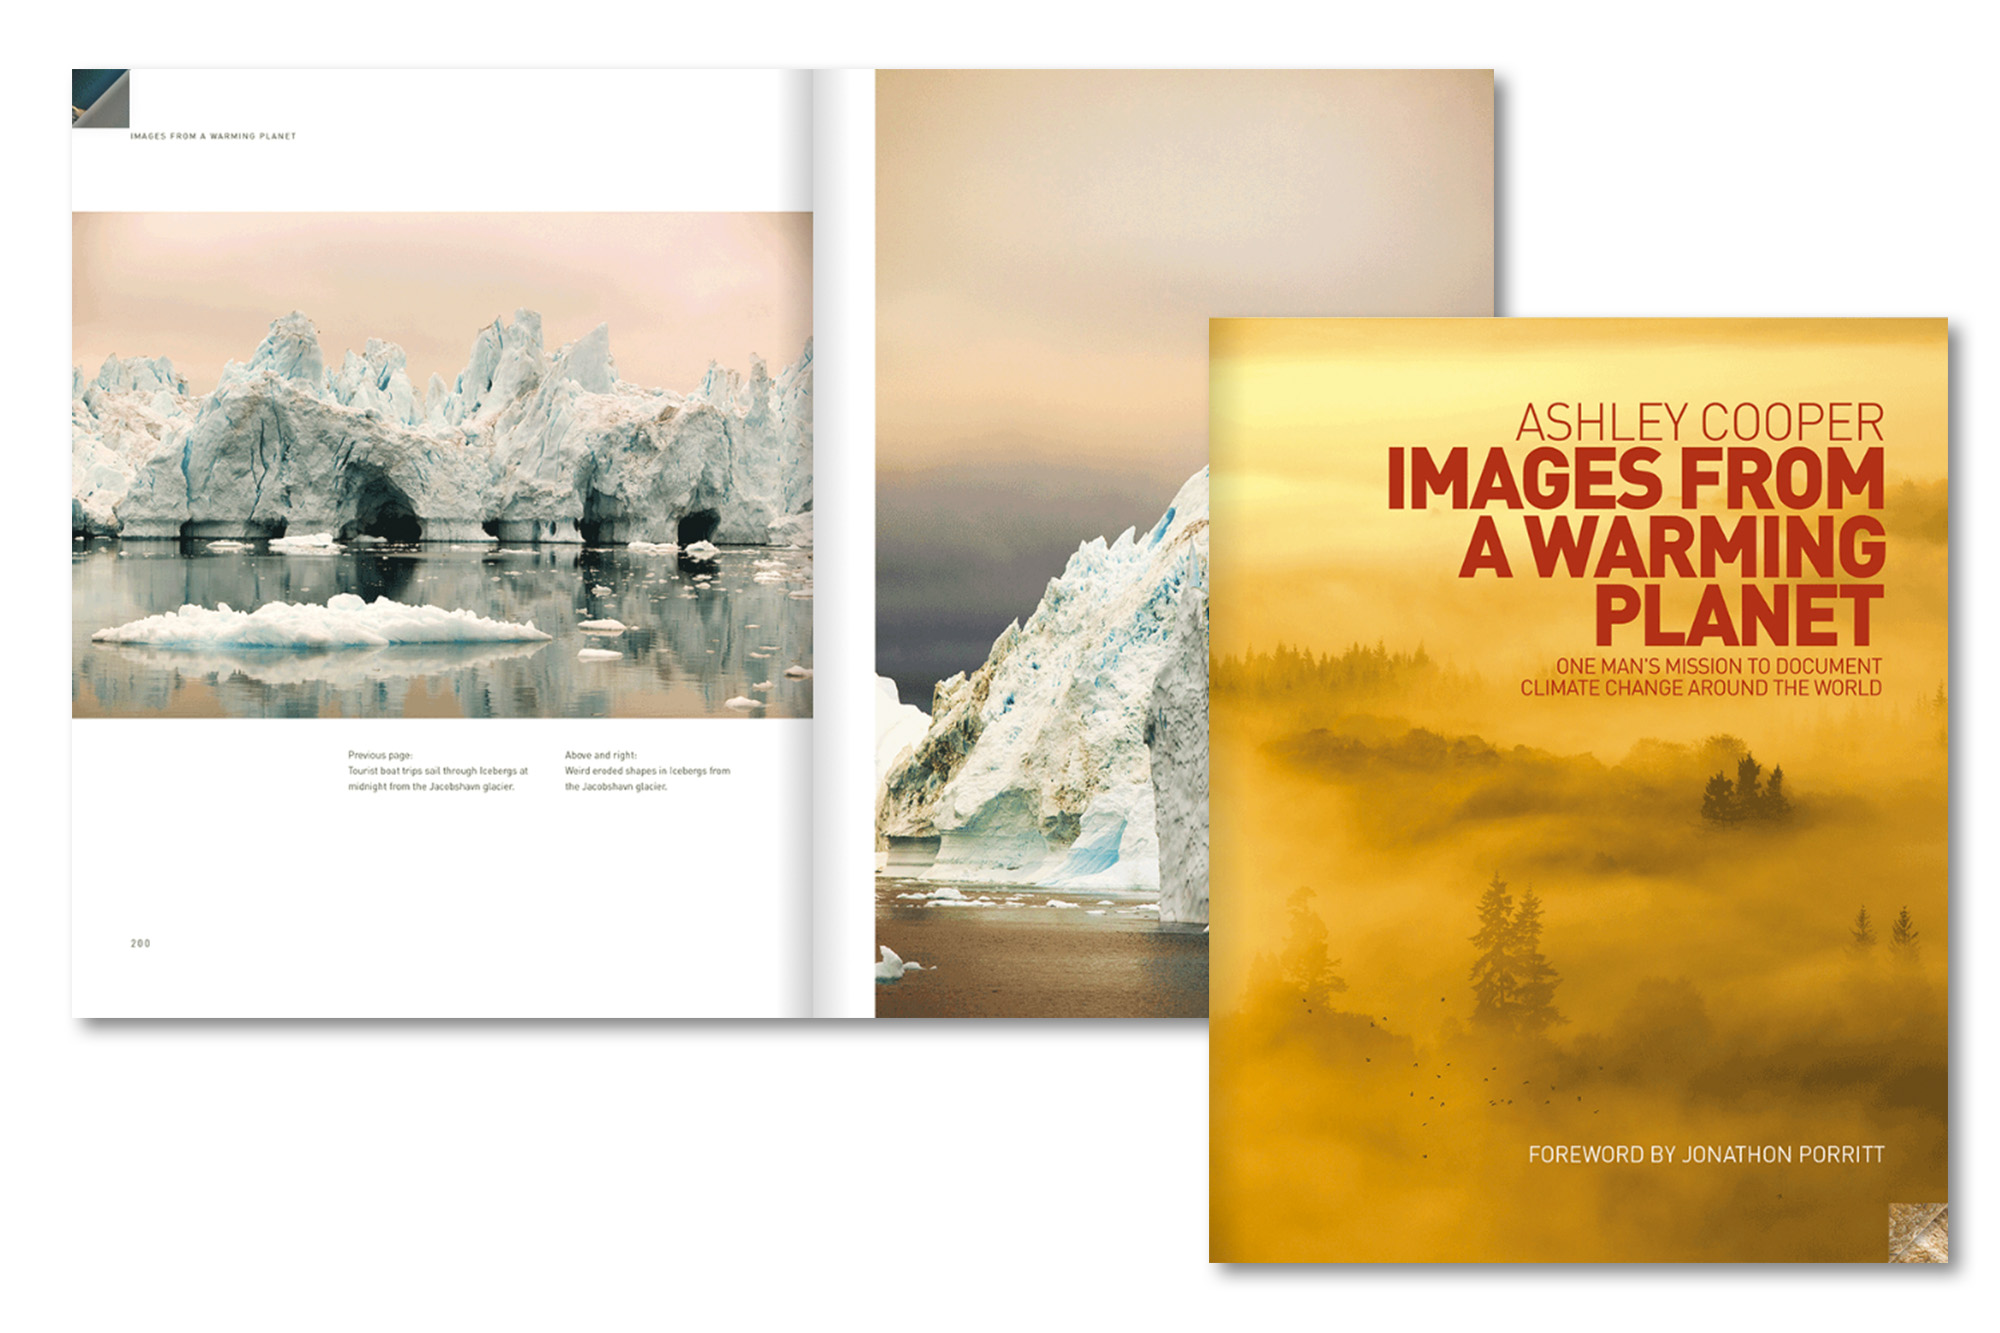 Images from a Warming Planet is available exclusively from Ashley Cooper's website